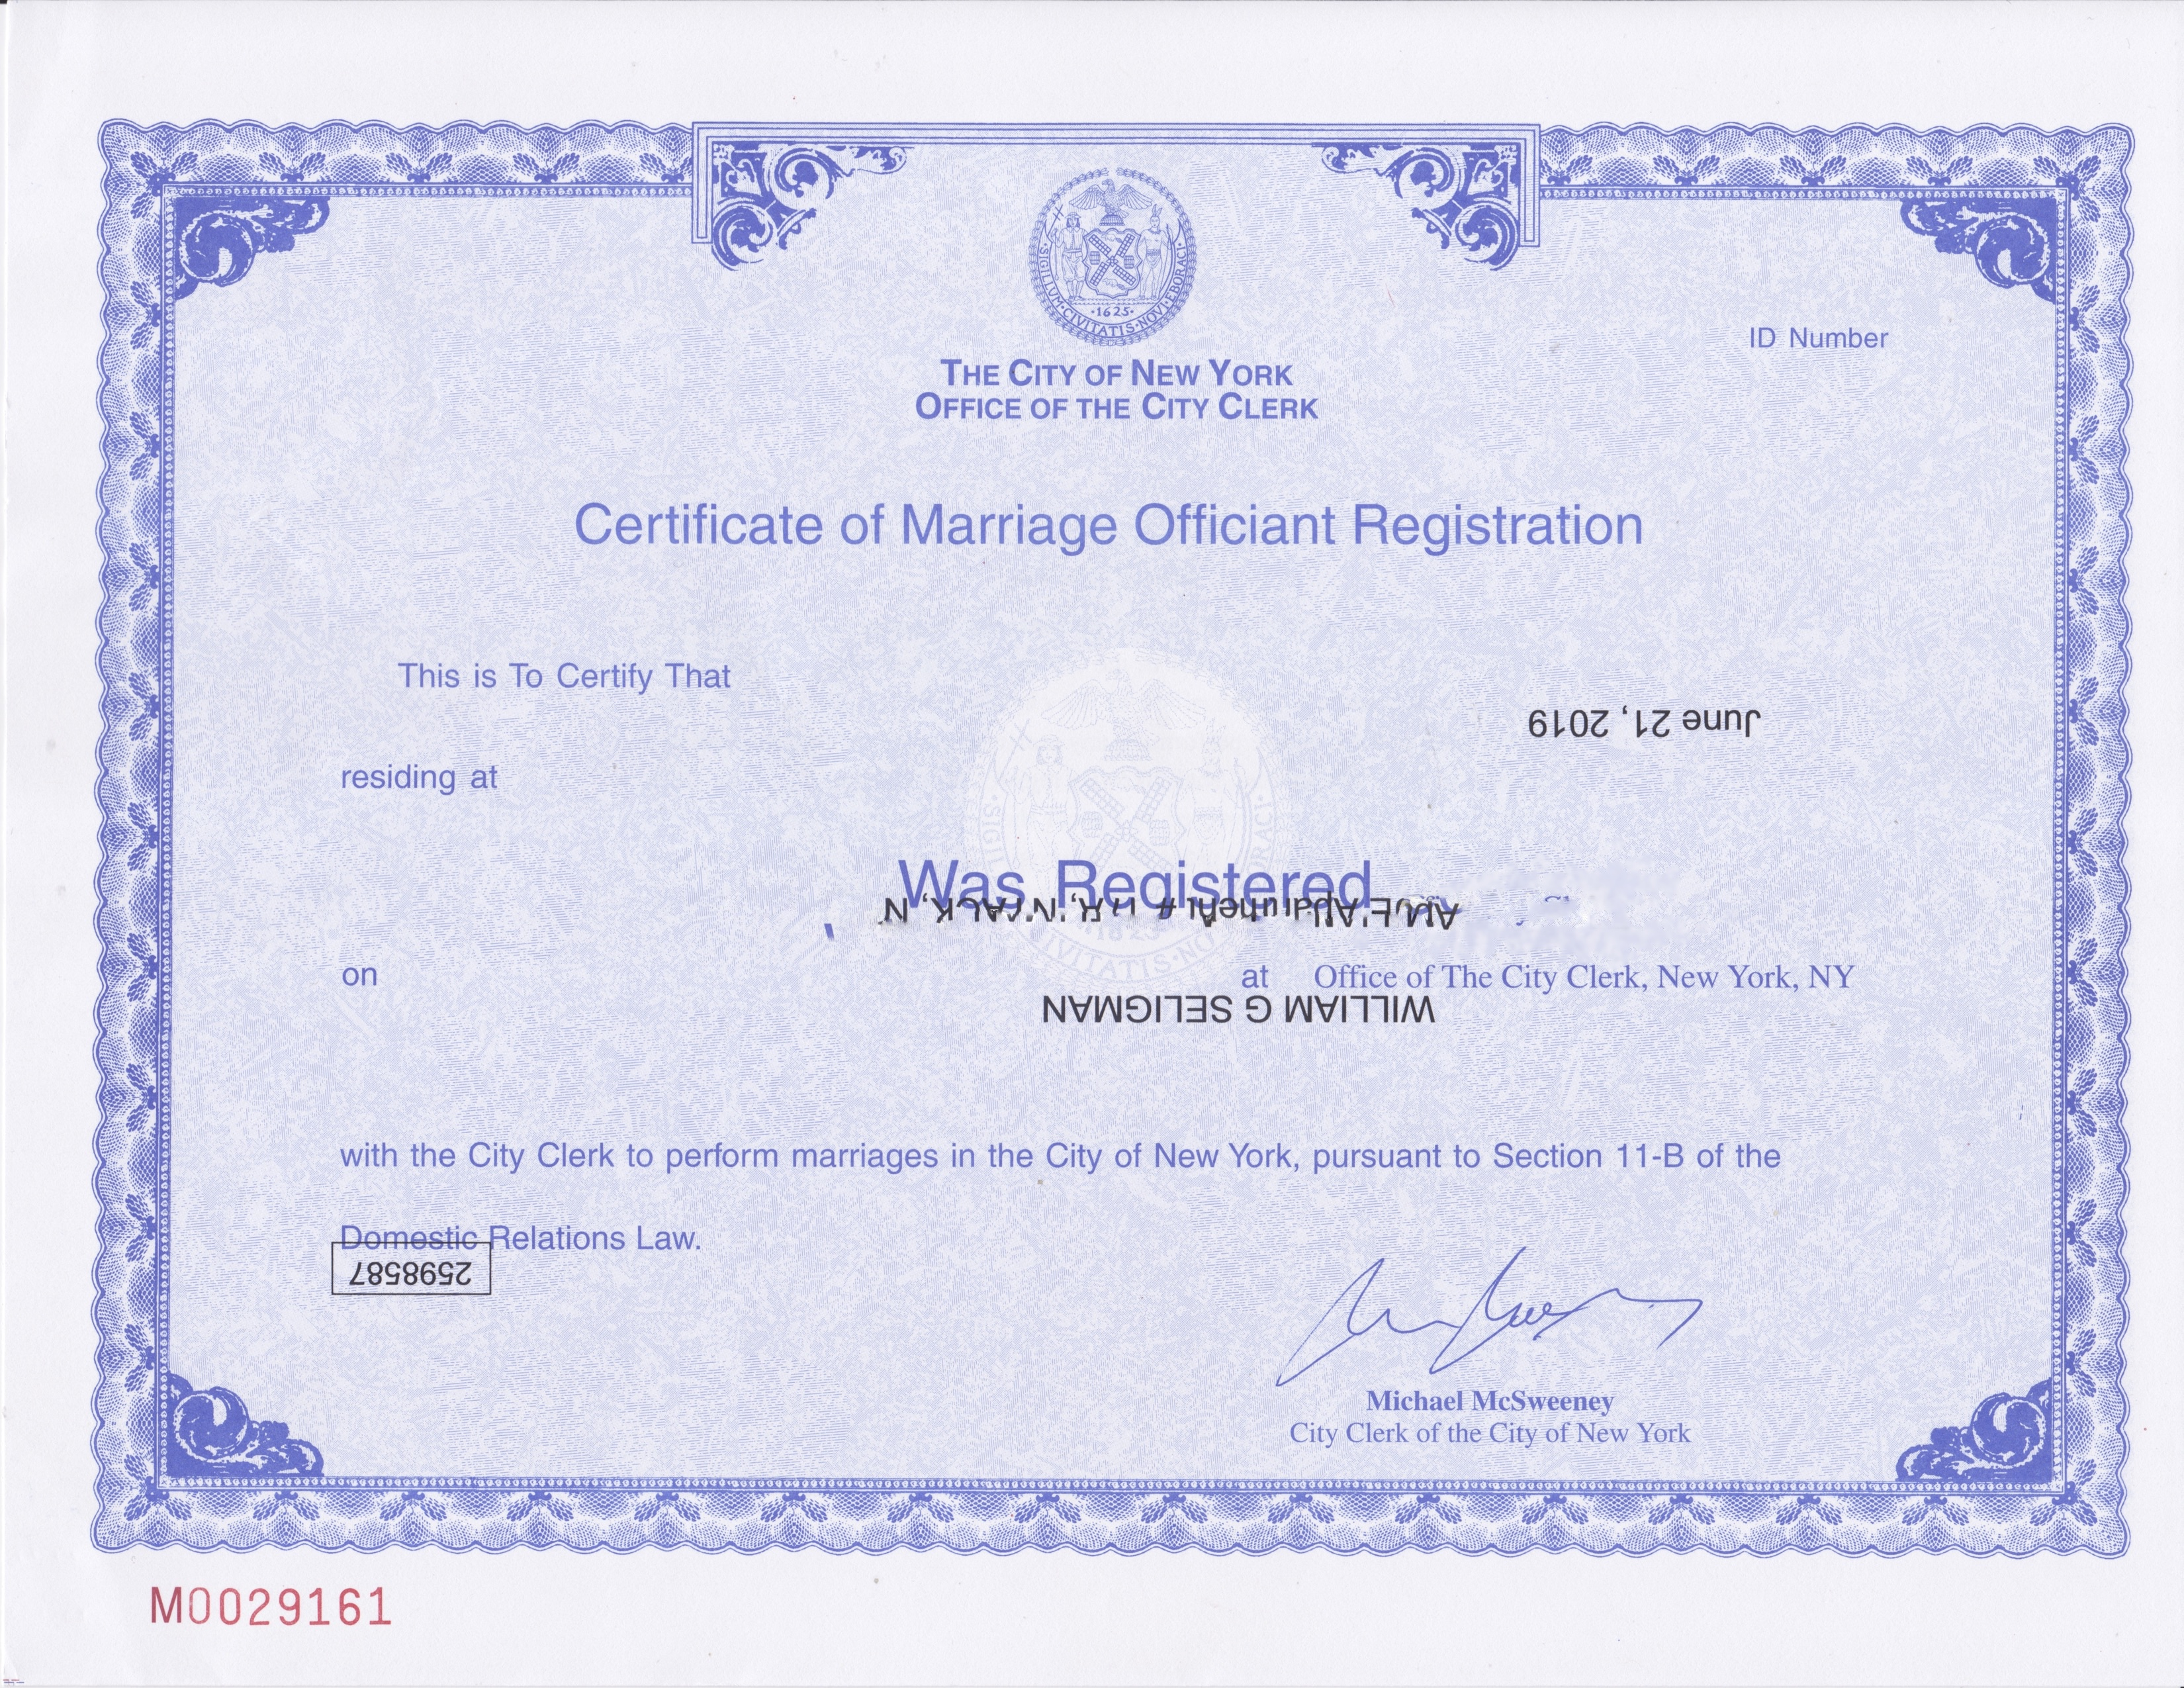 NYC Certificate of Marriage Officiant Registration blurred